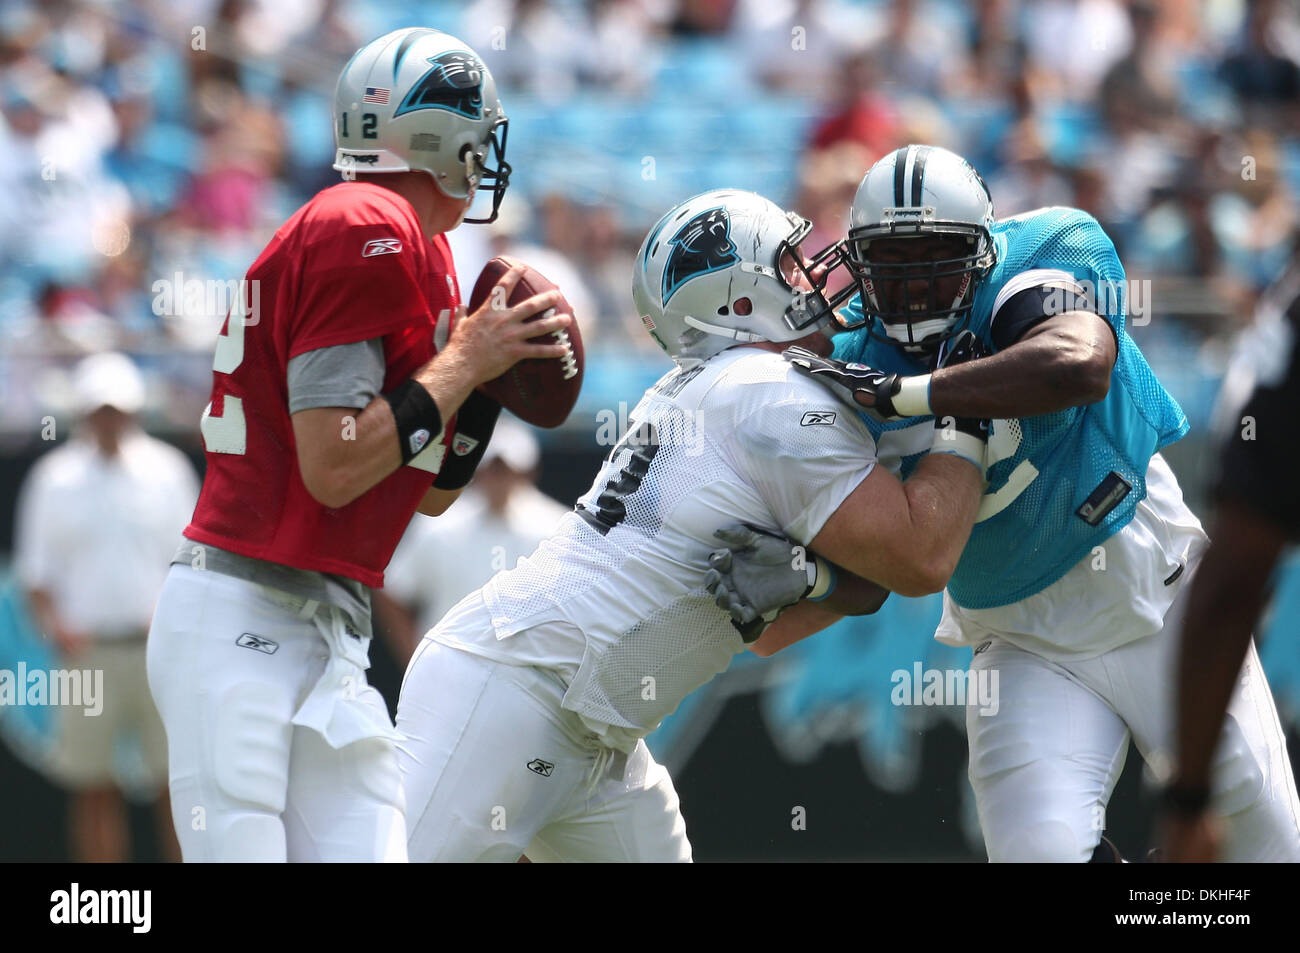 Aug. 8, 2009 - Charlotte, North Carolina, U.S - August 8, 2009:  Carolina Panther quarterback Josh McCown #12 looks for a receiver as guard Justin Geisinger #63 blocks defensive tackle Damione Lewis #92 during scrimmage at the Fan Fest held at Bank of America Stadium in Charlotte, North Carolina. (Credit Image: © Southcreek Global/ZUMApress.com) - Stock Image